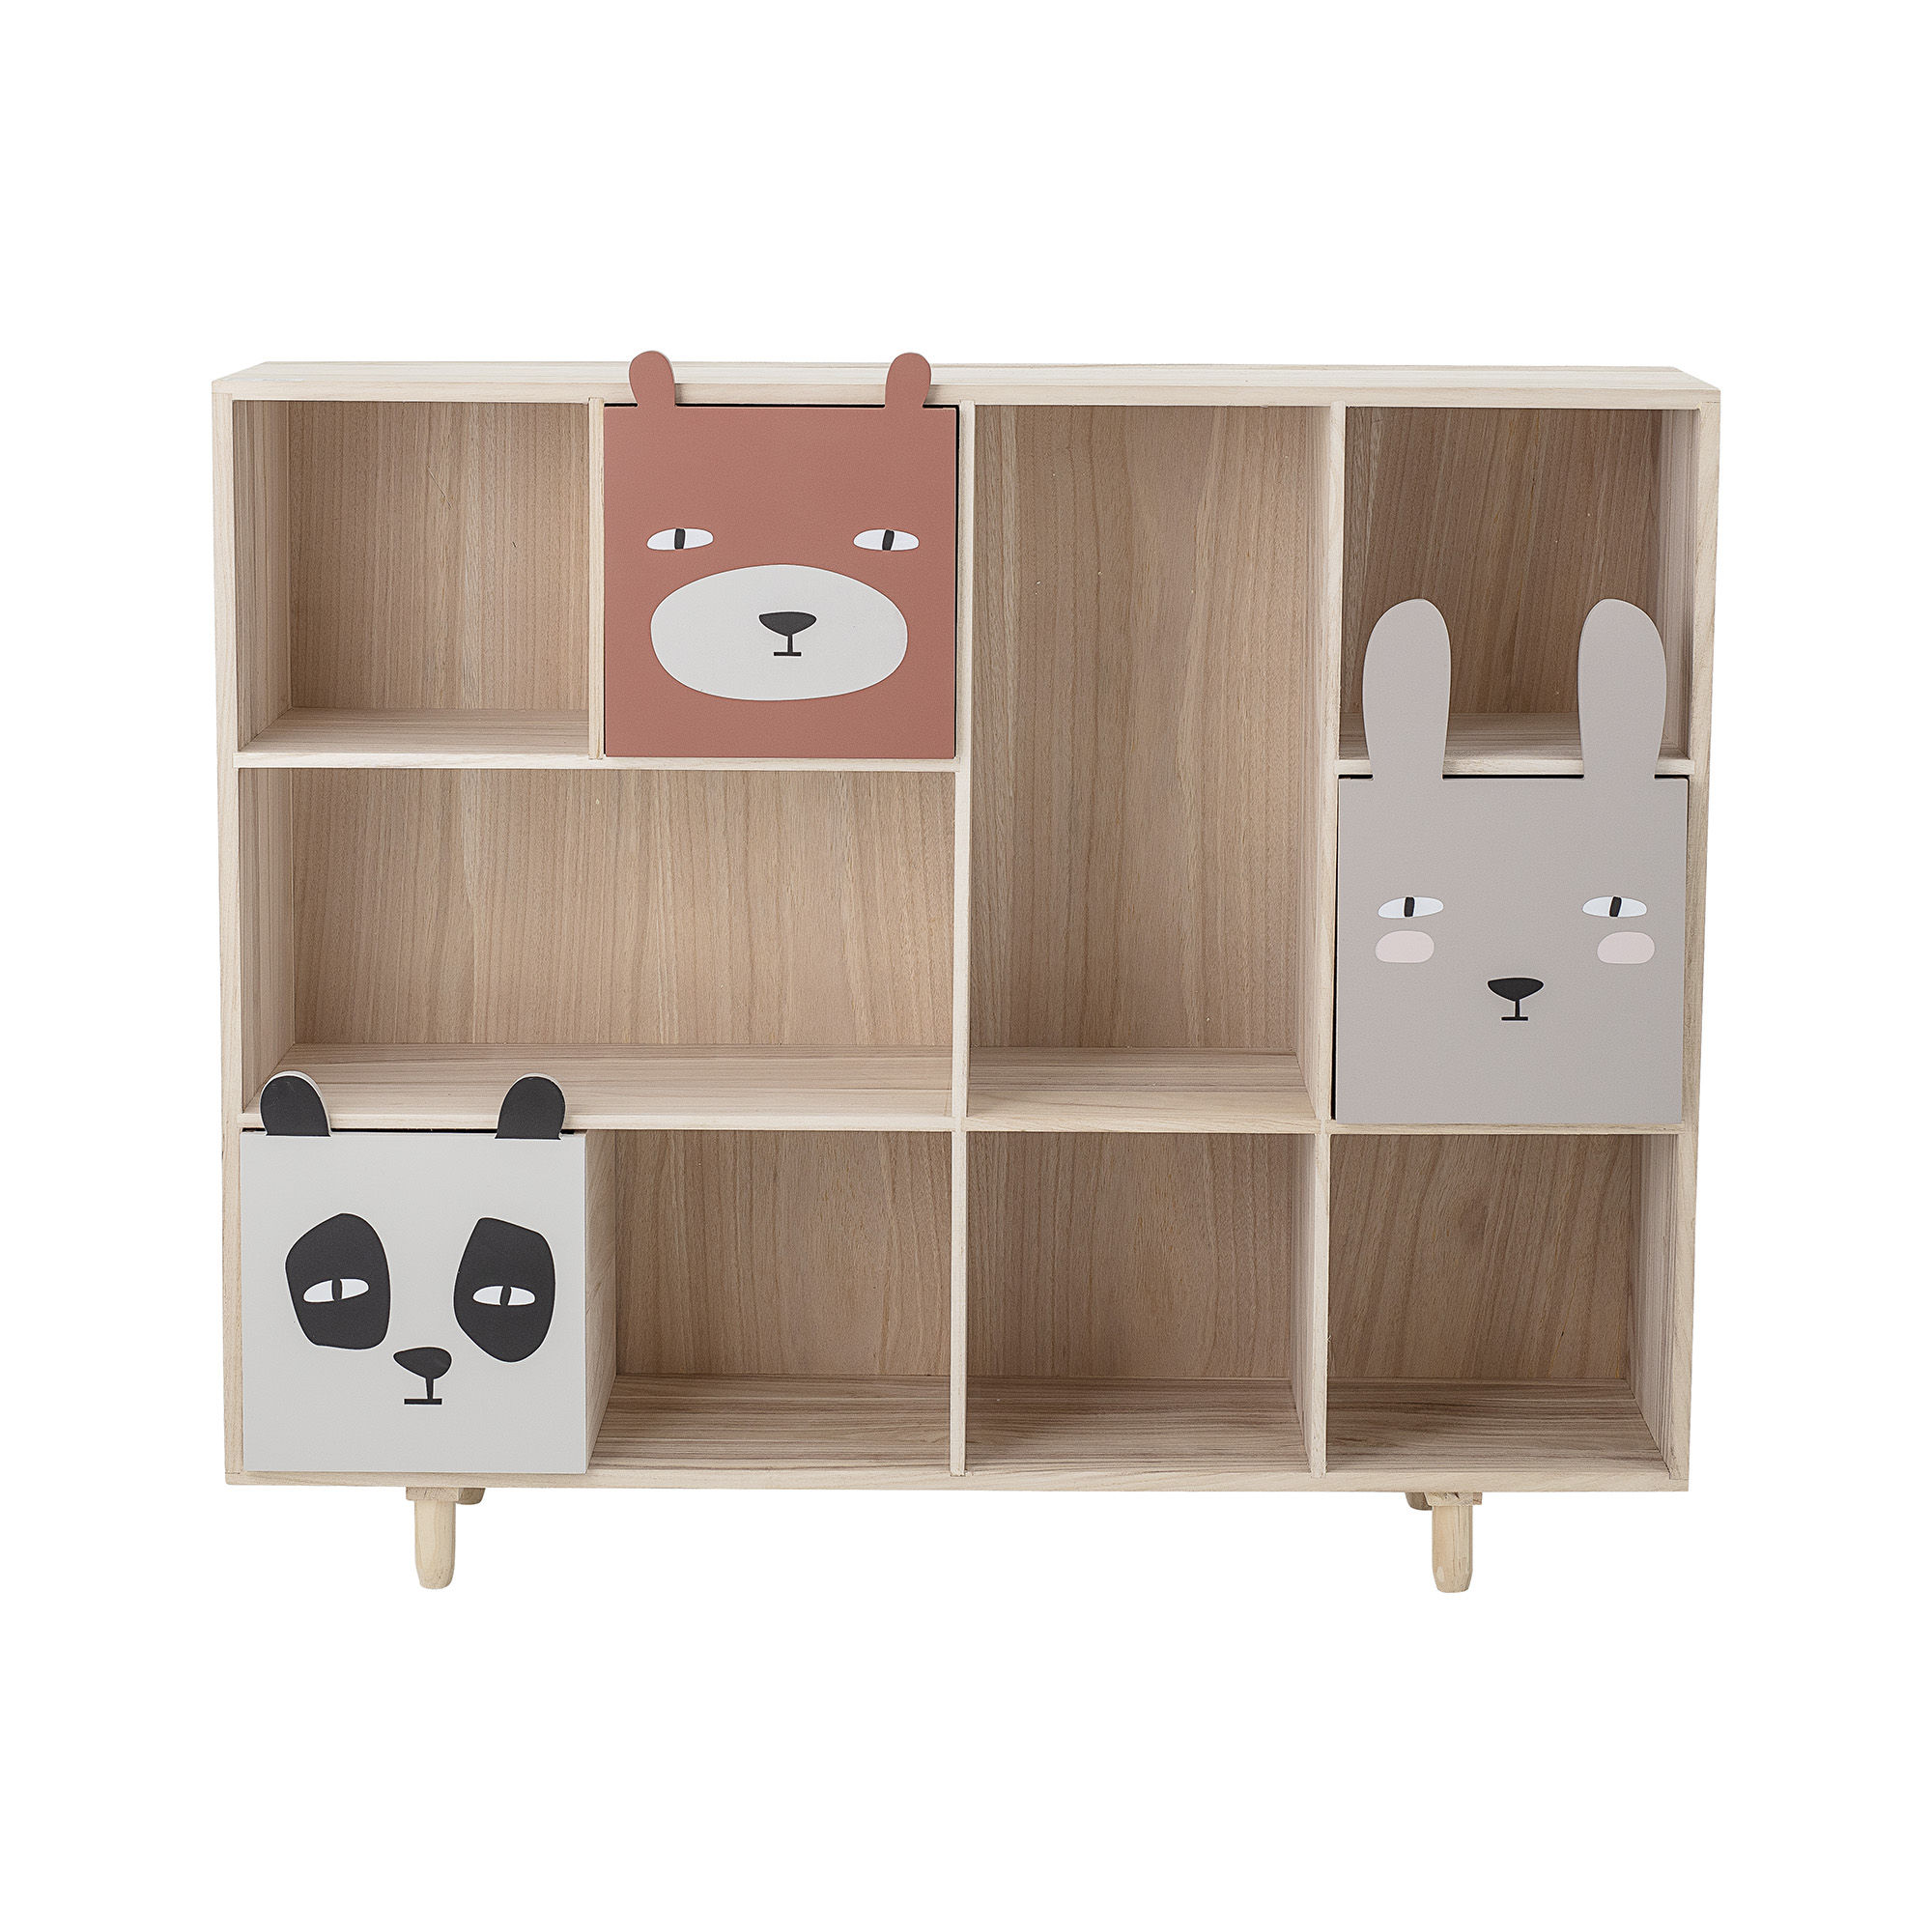 Furniture - Bookcases & Bookshelves - Animaux Bookcase - / 3 drawers - L 107 x H 94 cm by Bloomingville - Grey / Wood - MDF, Paulownia wood